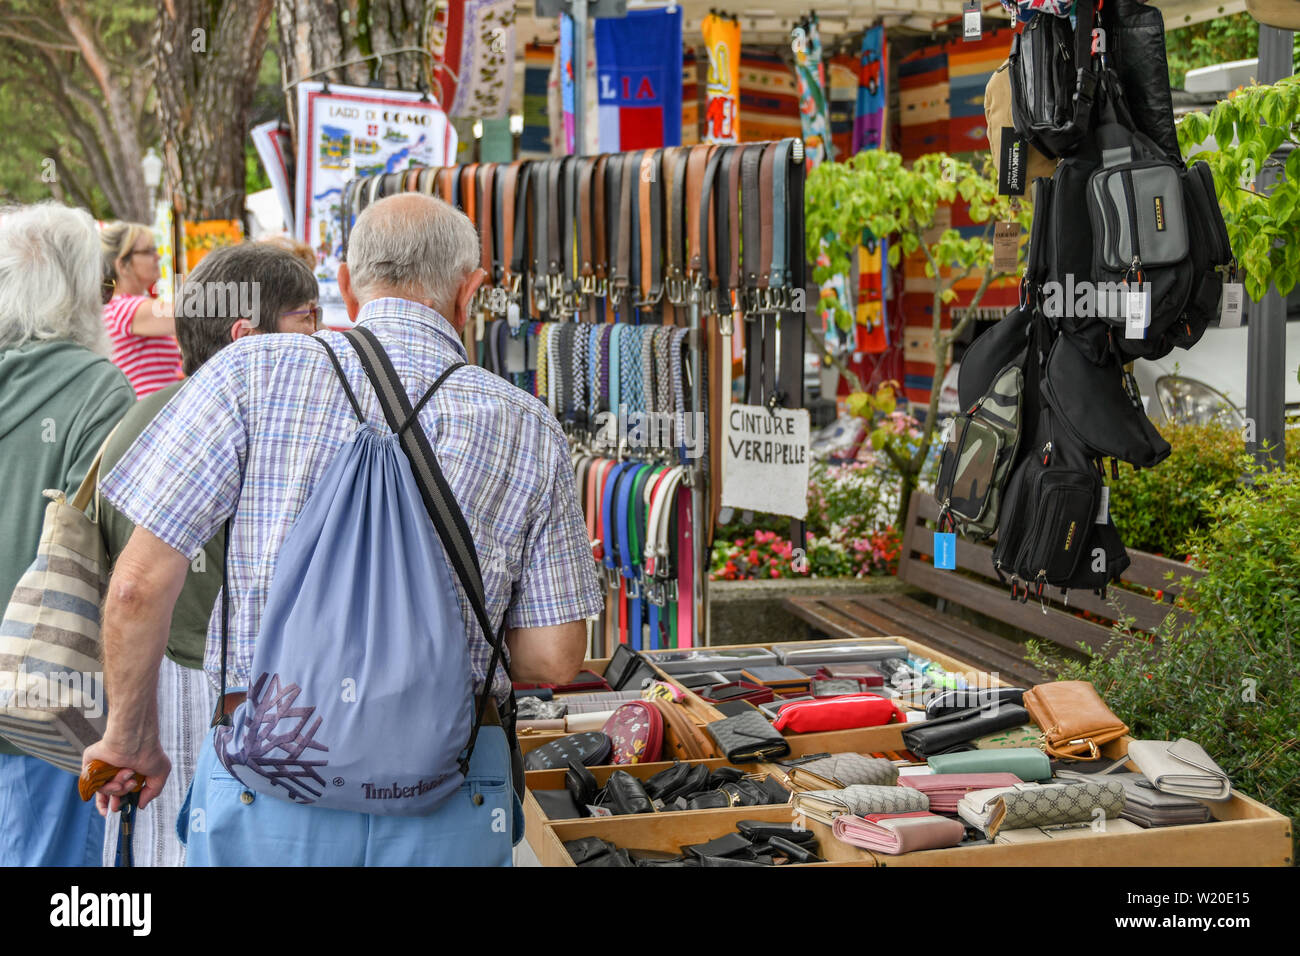 LENNO, LAKE COMO, ITALY - JUNE 2019: People looking at leather goods on a stall in the farmer's market in Lenno on Lake Como. - Stock Image